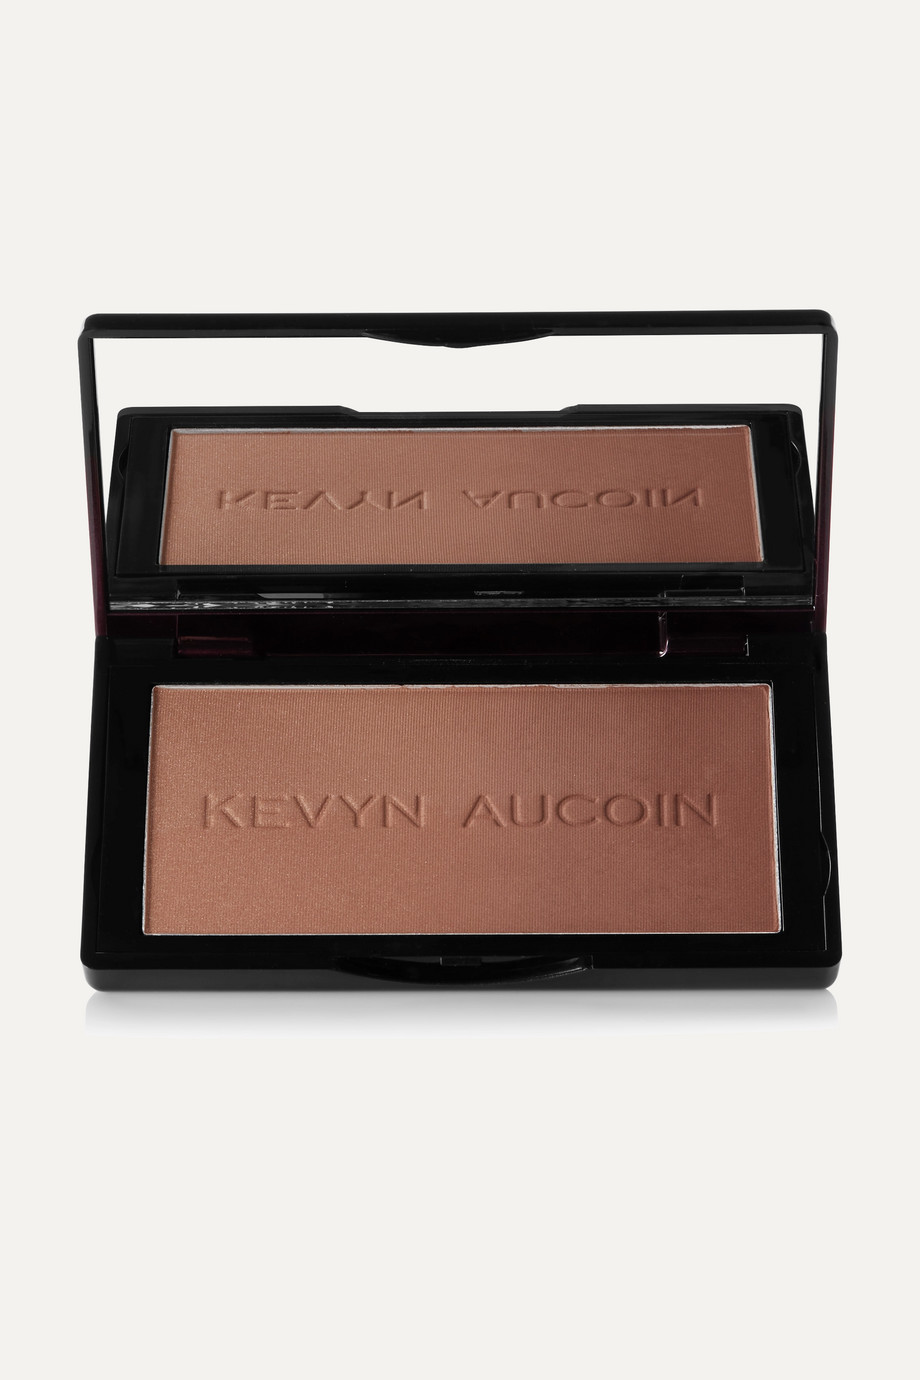 Kevyn Aucoin The Neo Bronzer - Dusk